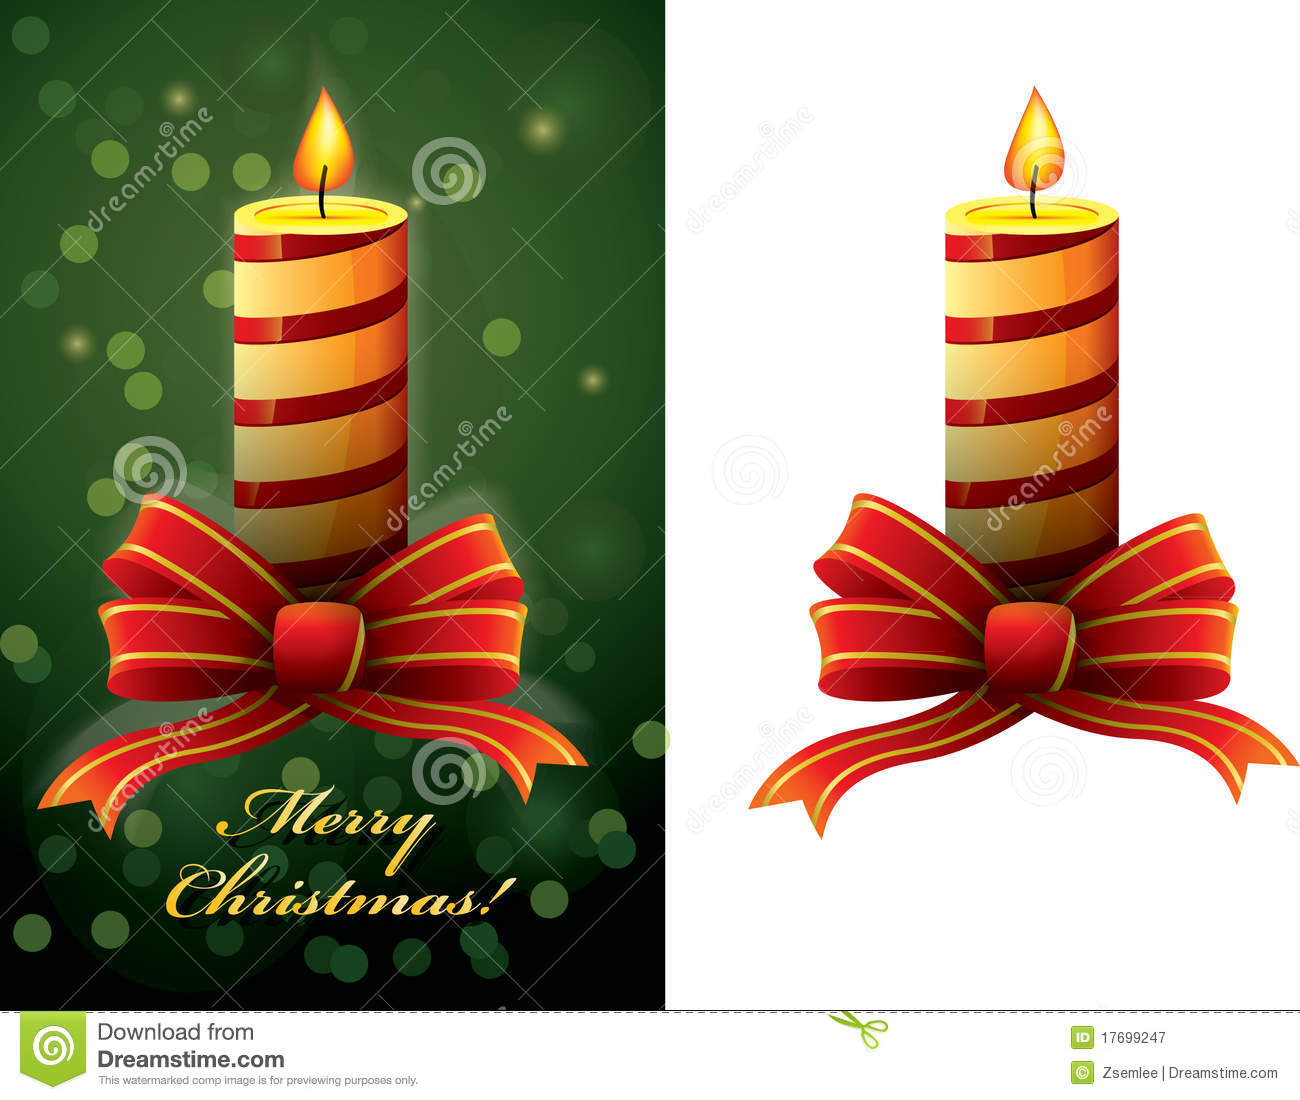 Star background vector download free vector art stock graphics - Christmas Candle Vector Royalty Free Stock Photography